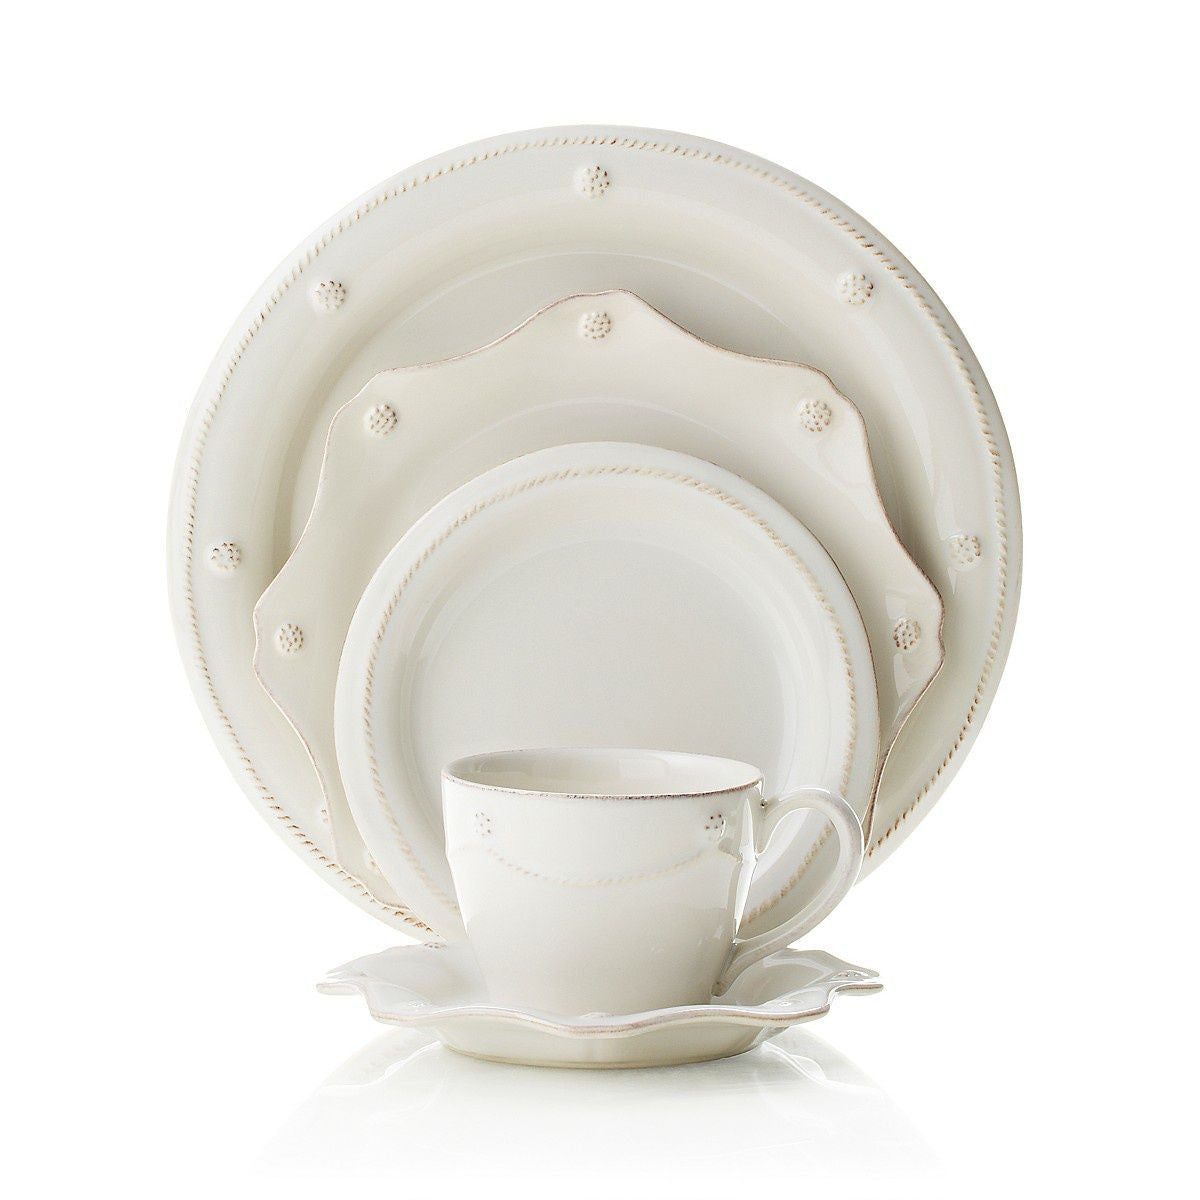 Berry & Thread White Tea Cup